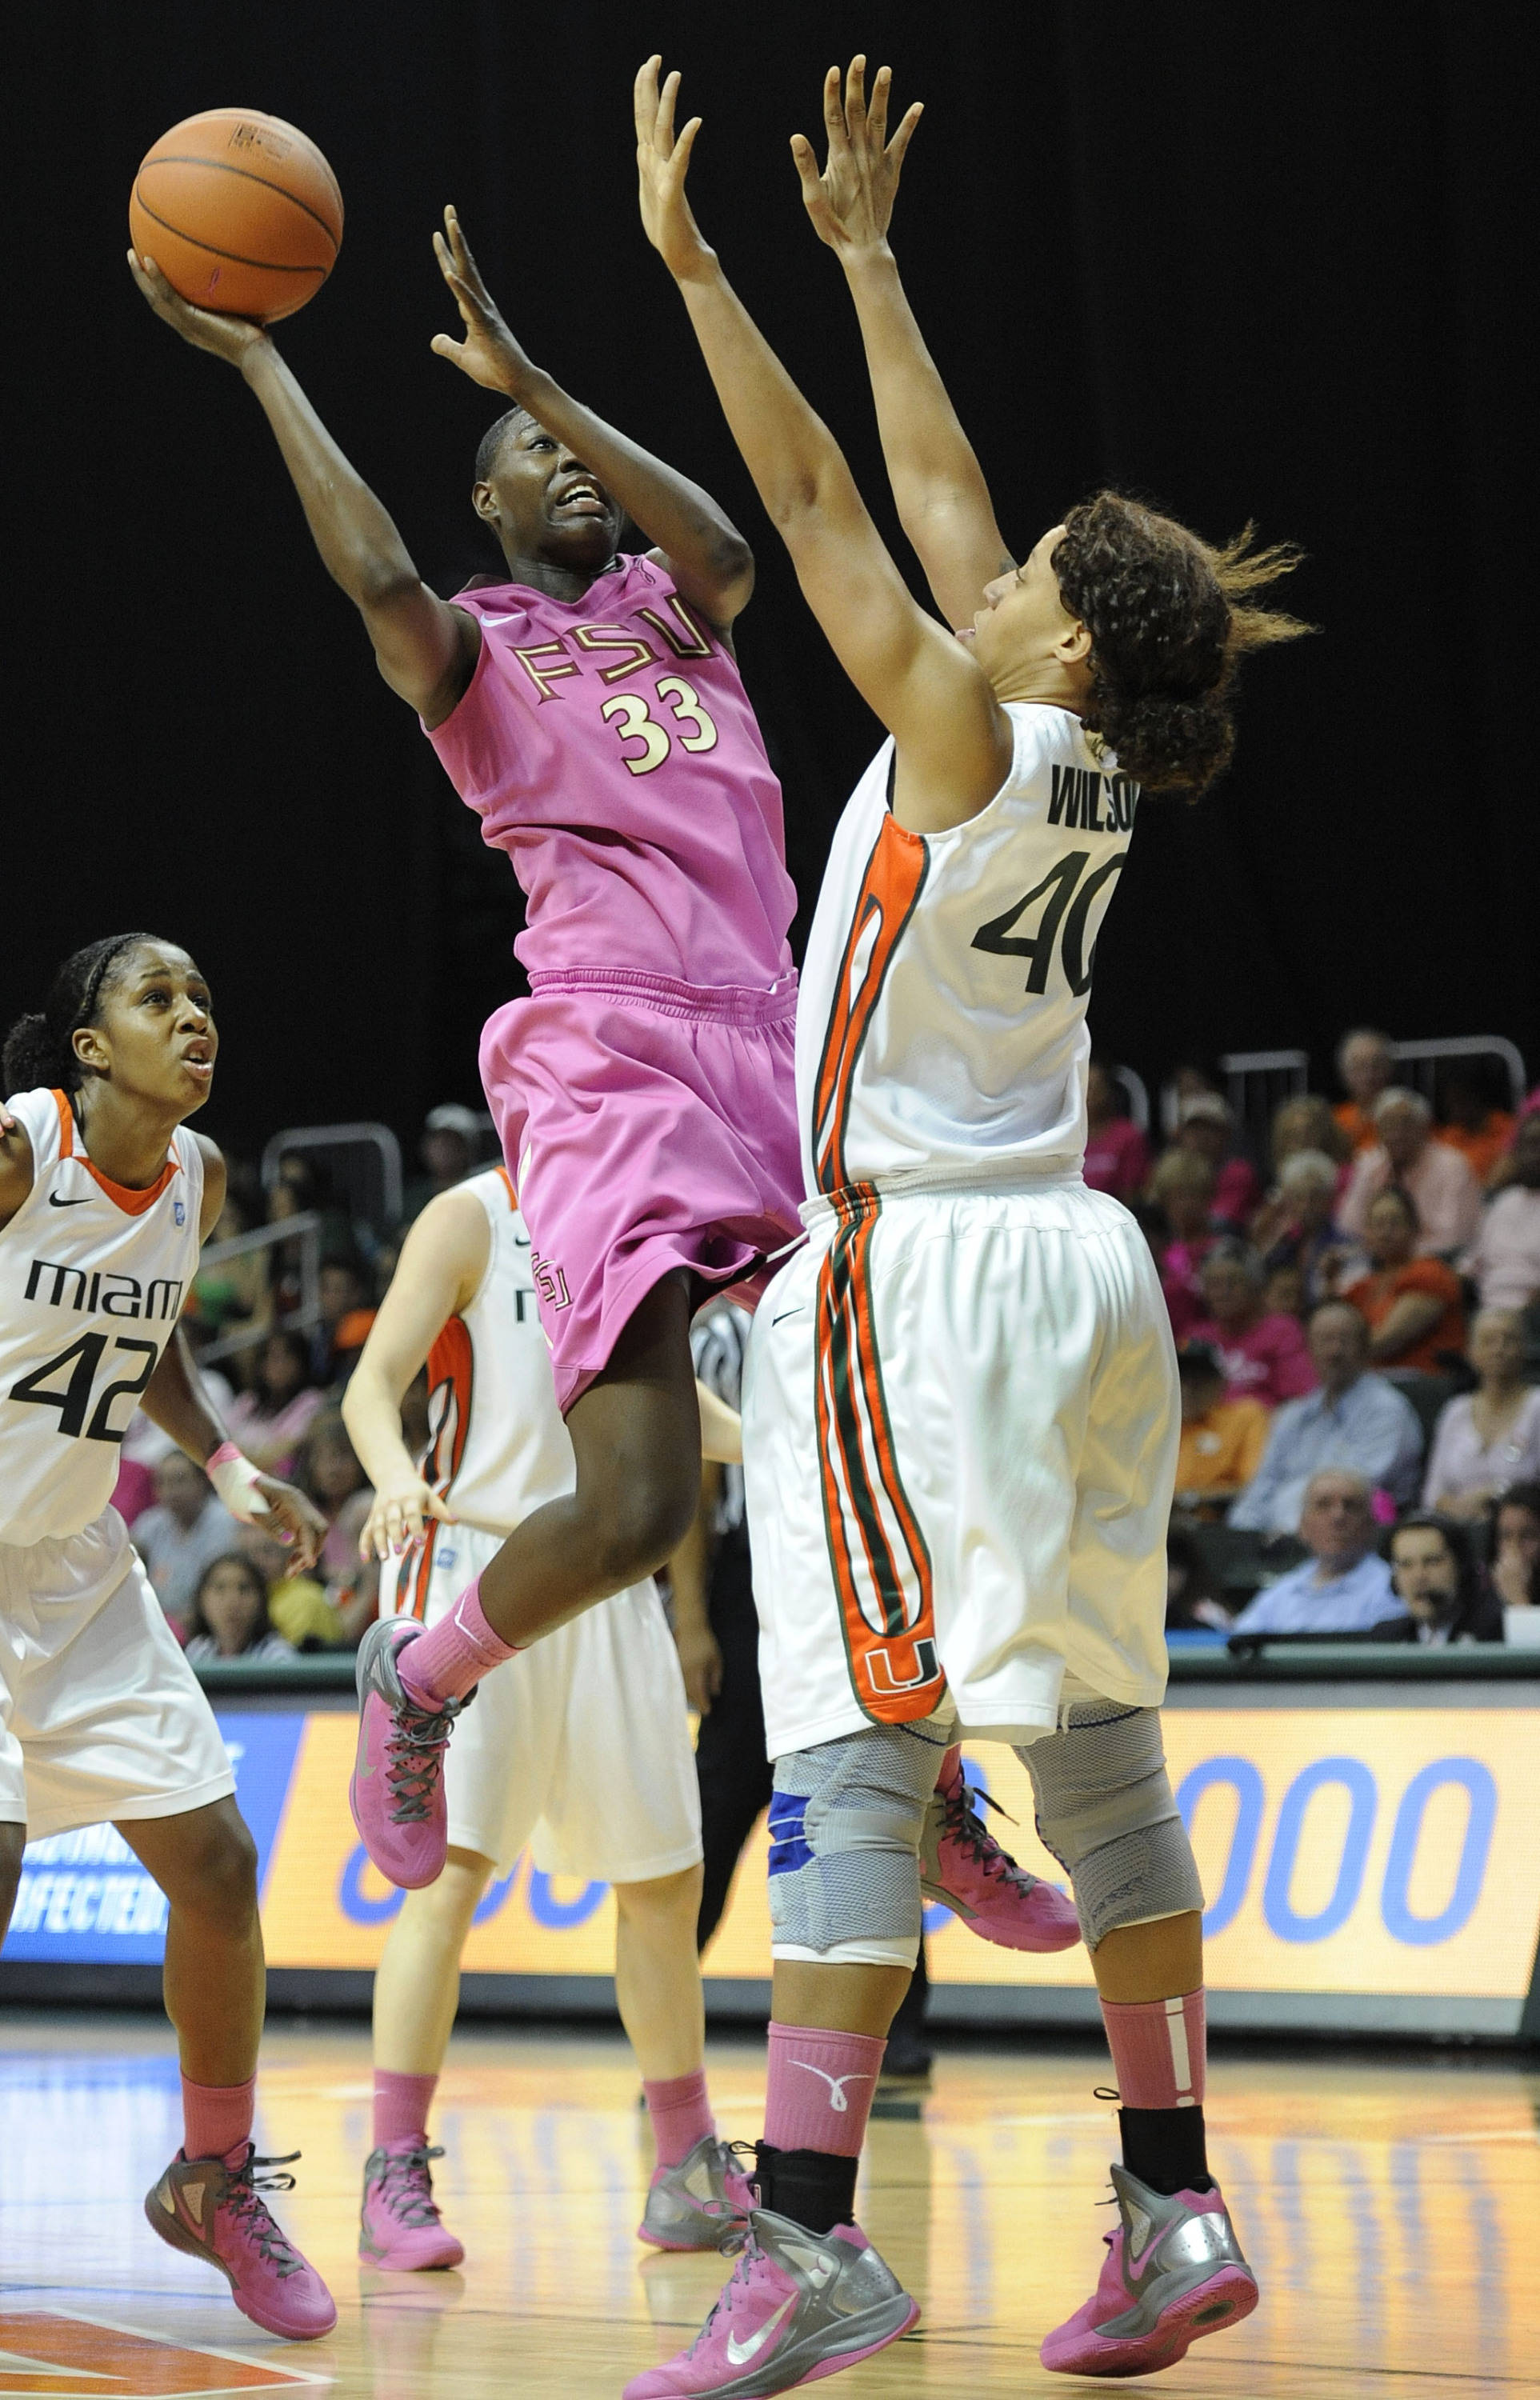 Florida State's Natasha Howard, left, shoots around the defense of Miami's Shawnice Wilson, right, during the second half of an NCAA college basketball game on Sunday, Feb. 19, 2012, in Coral Gables, Fla. Miami defeated Florida State 67-60. (AP Photo/Rhona Wise)